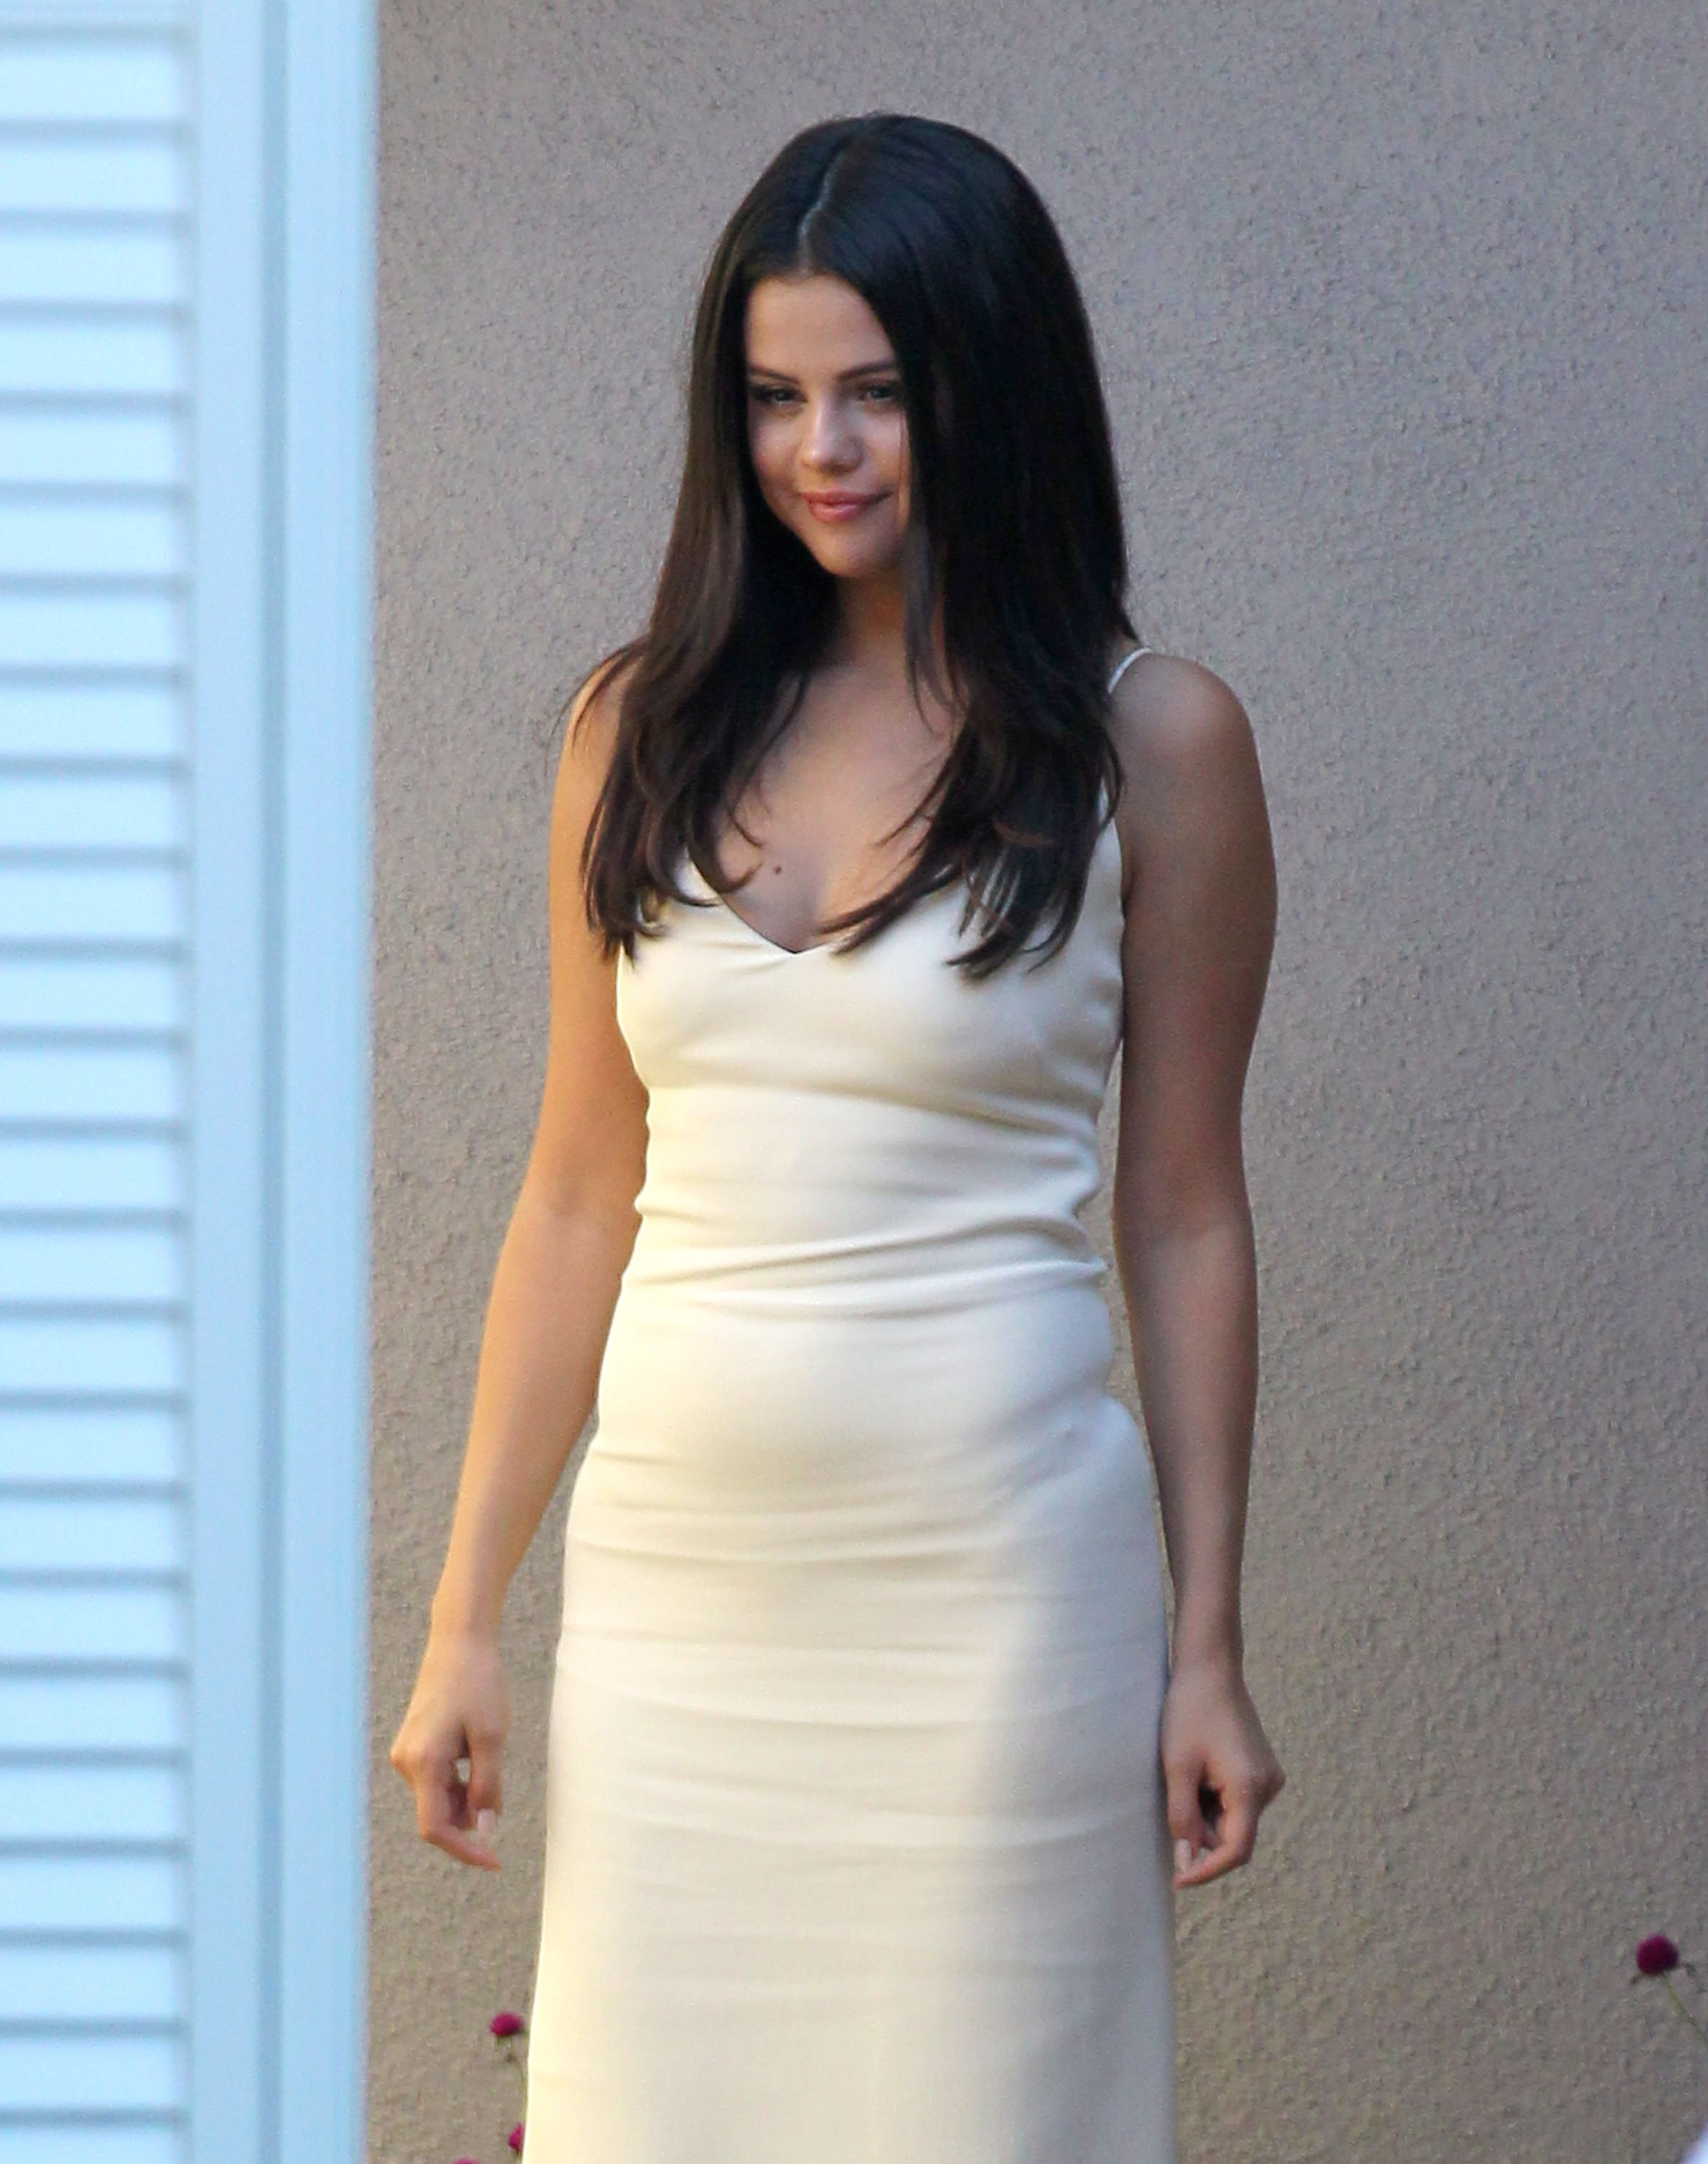 selena-gomez-style-arriving-to-jennifer-klein-s-day-of-indulgence-summer-party-in-brentwood_5